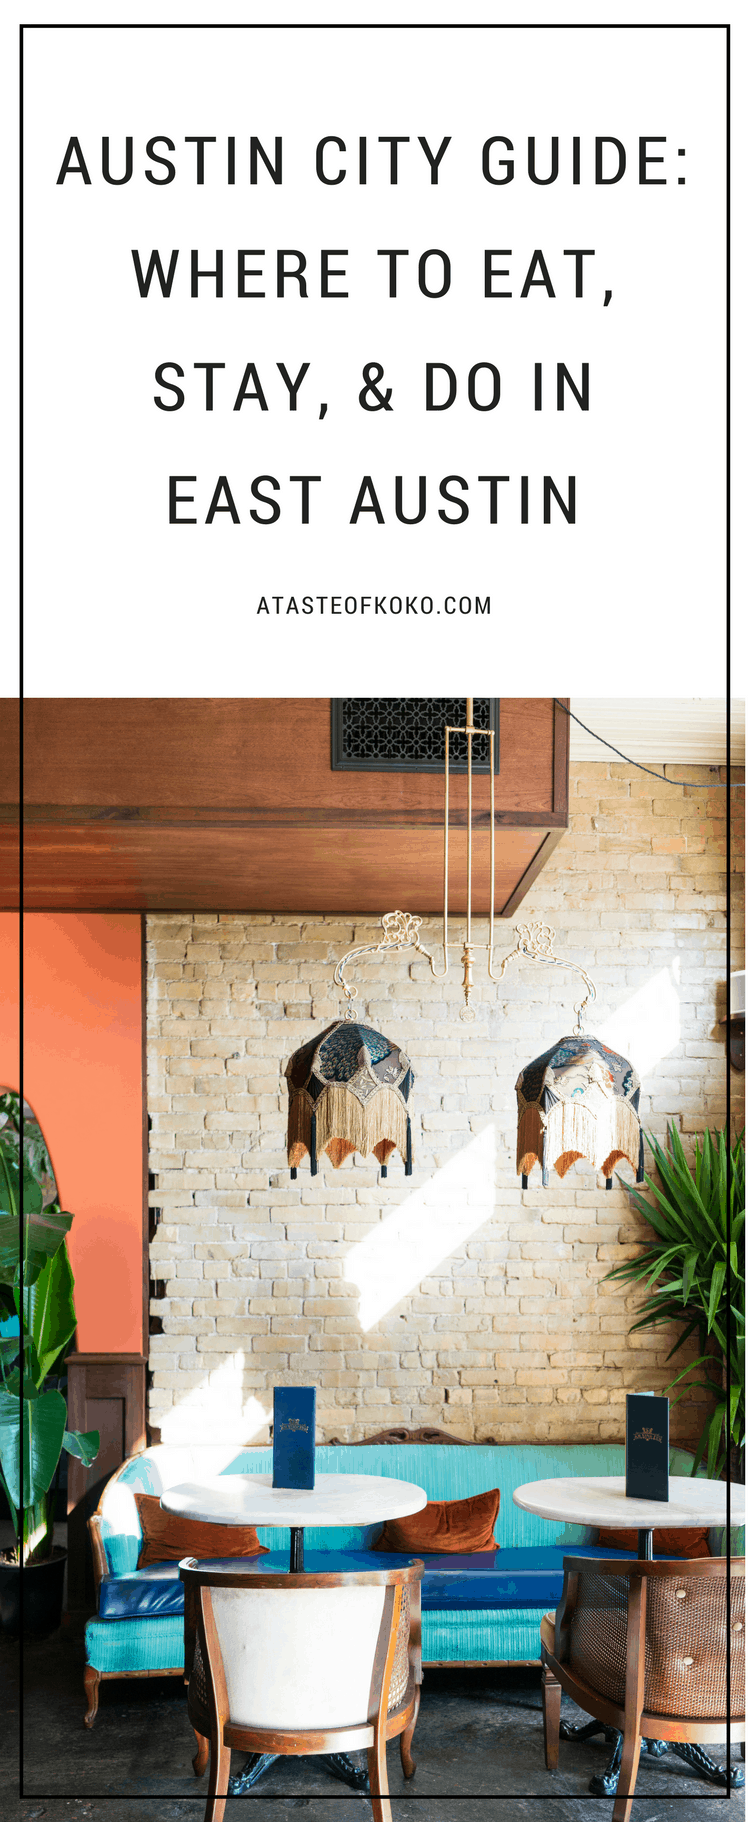 Austin City Guide - Where To Eat, Stay, & Do In East Austin